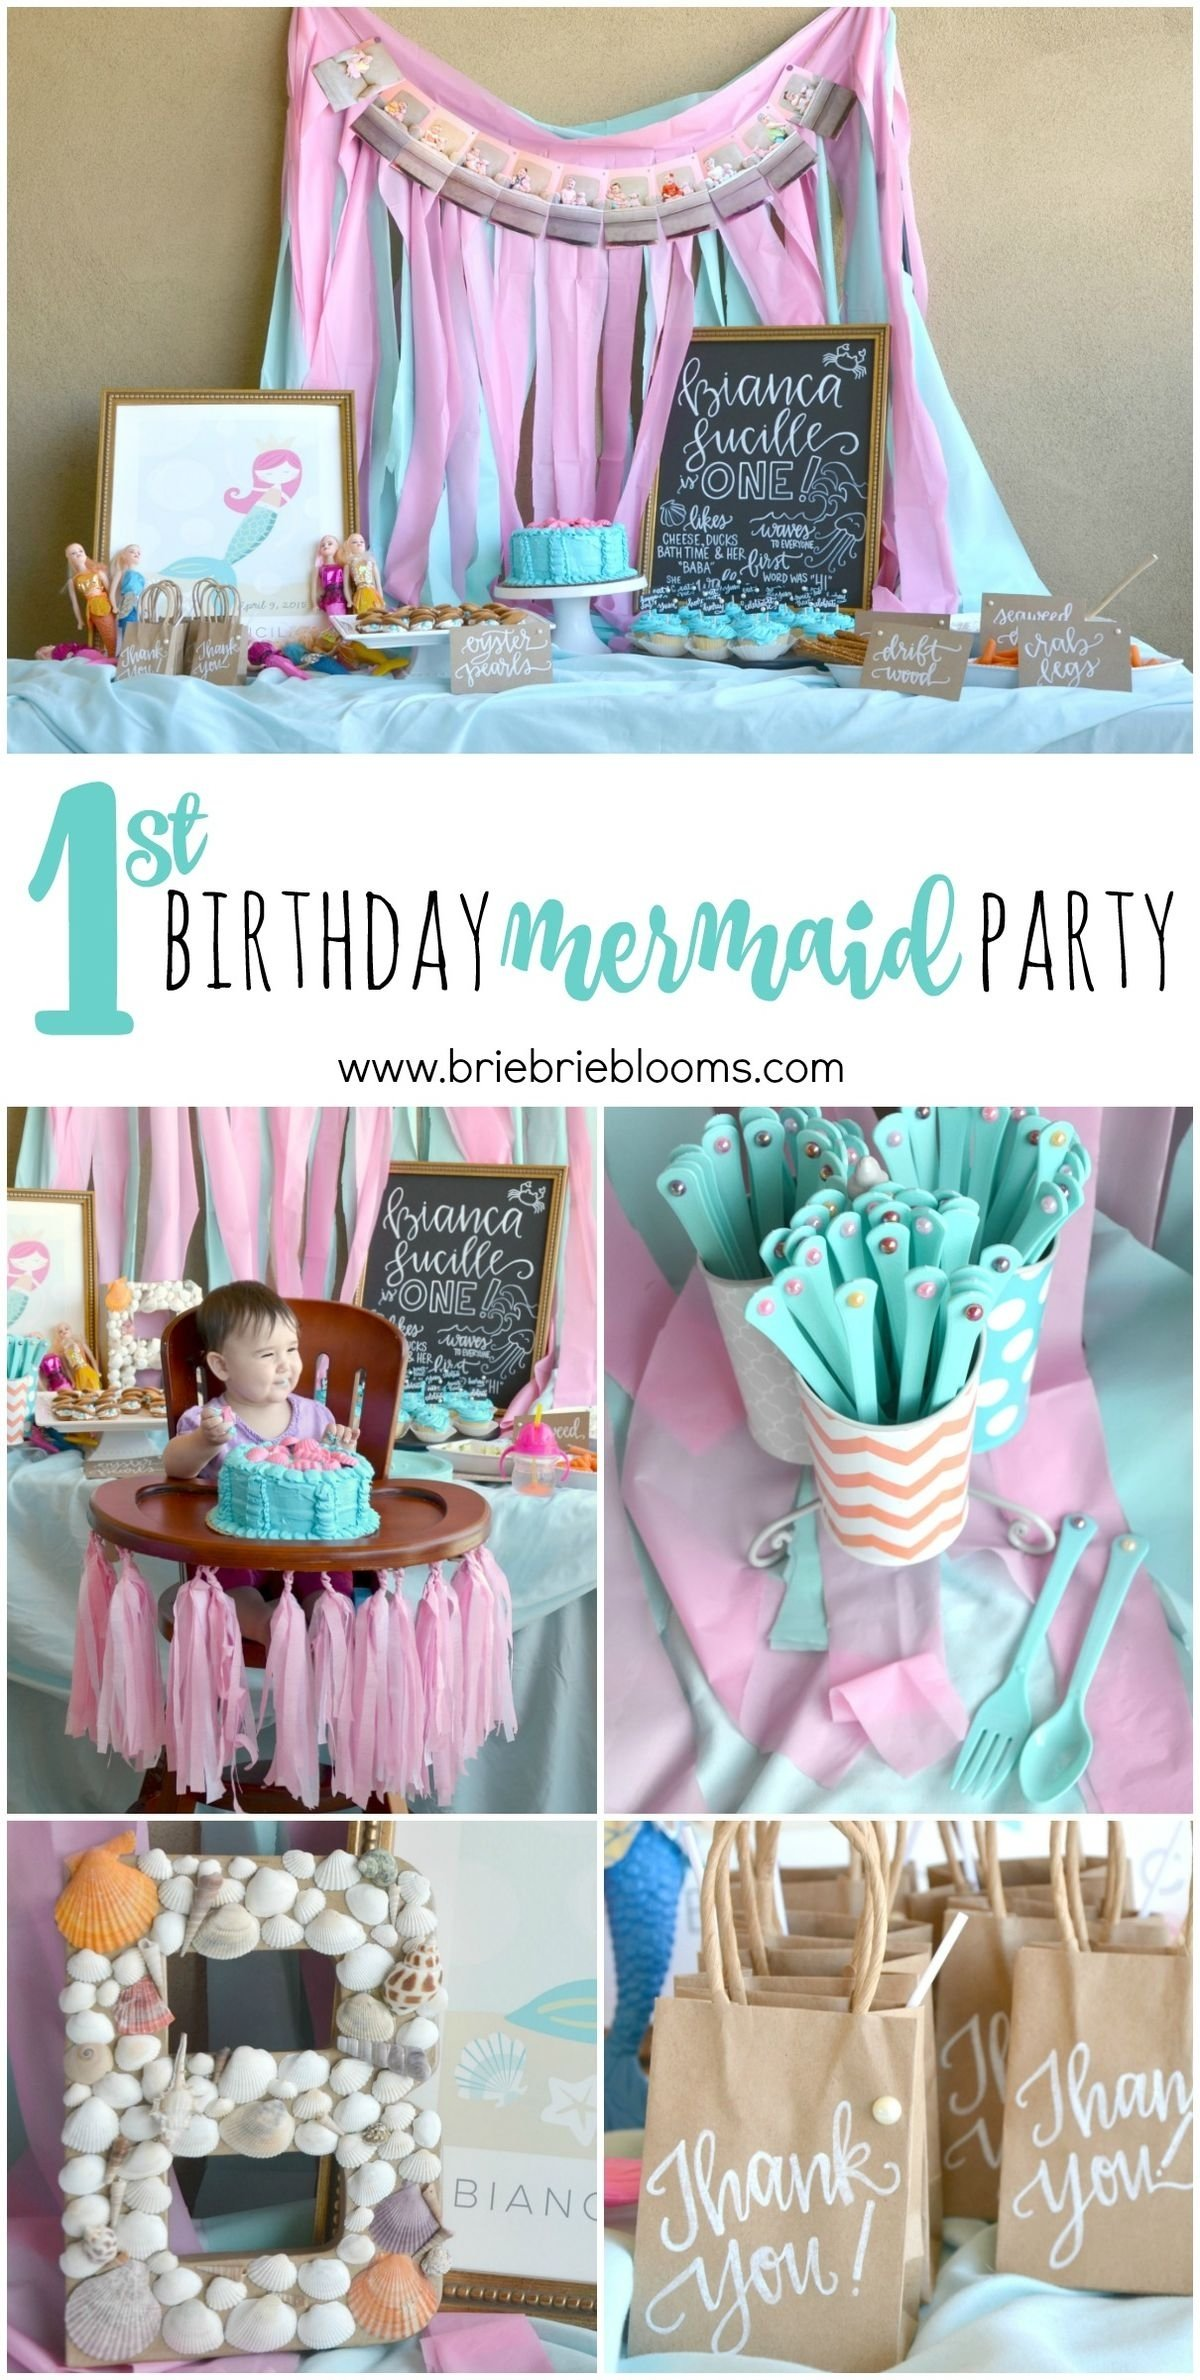 10 Famous One Year Birthday Party Ideas themes birthday one year old birthday party ideas for twins with 2020